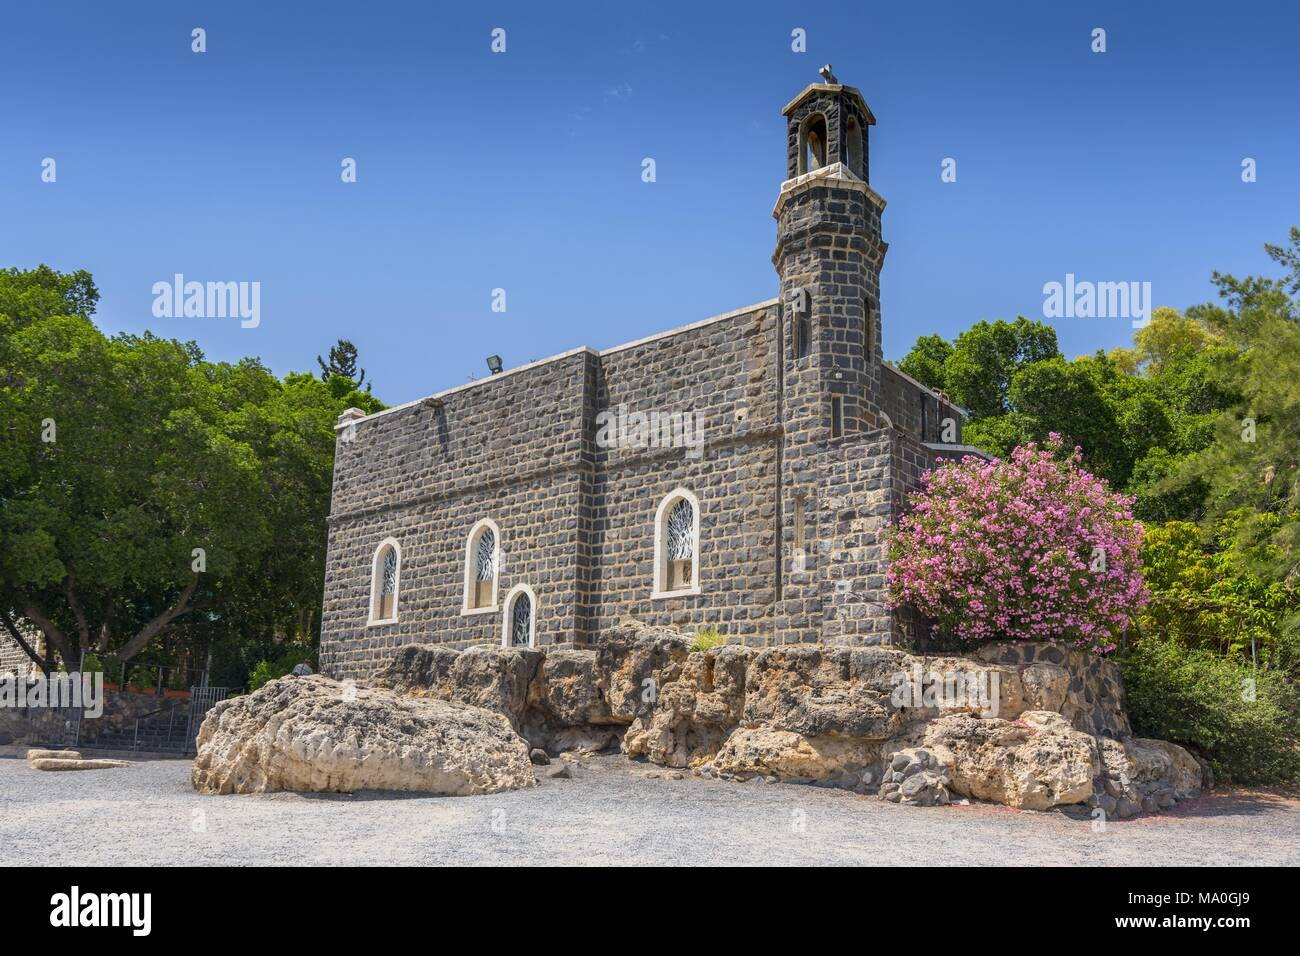 Church of the Primacy of St Peter in Tabgha, Galilee, Israel, Middle East. - Stock Image